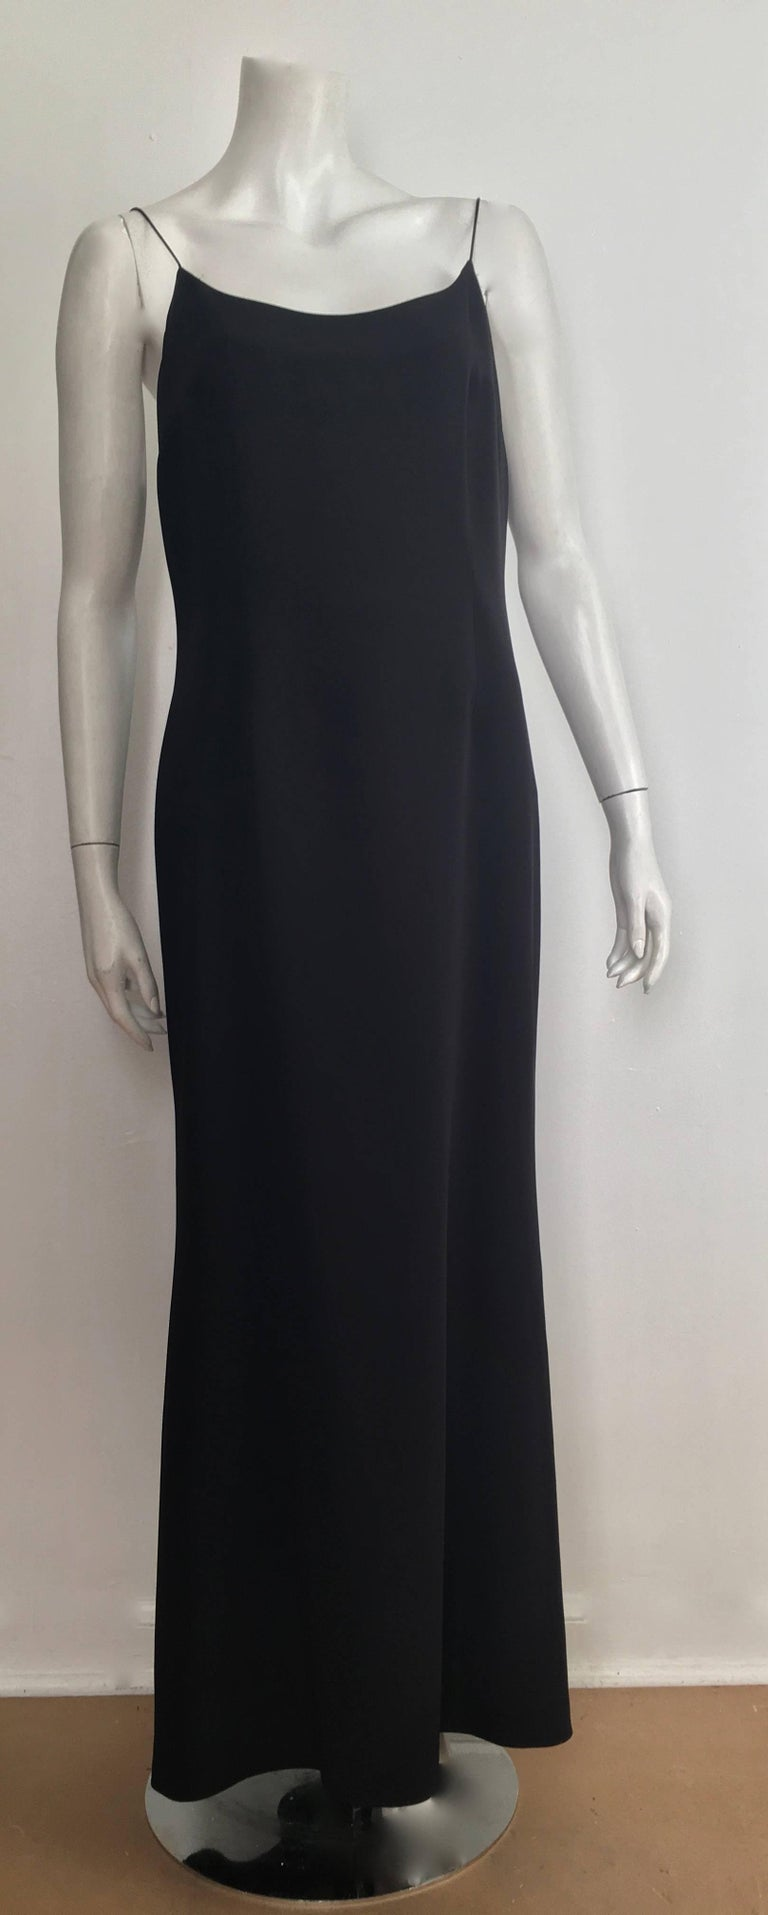 3eff5896cc7 Naeem Khan black silk slip spaghetti strap evening maxi dress is a size 12.  The